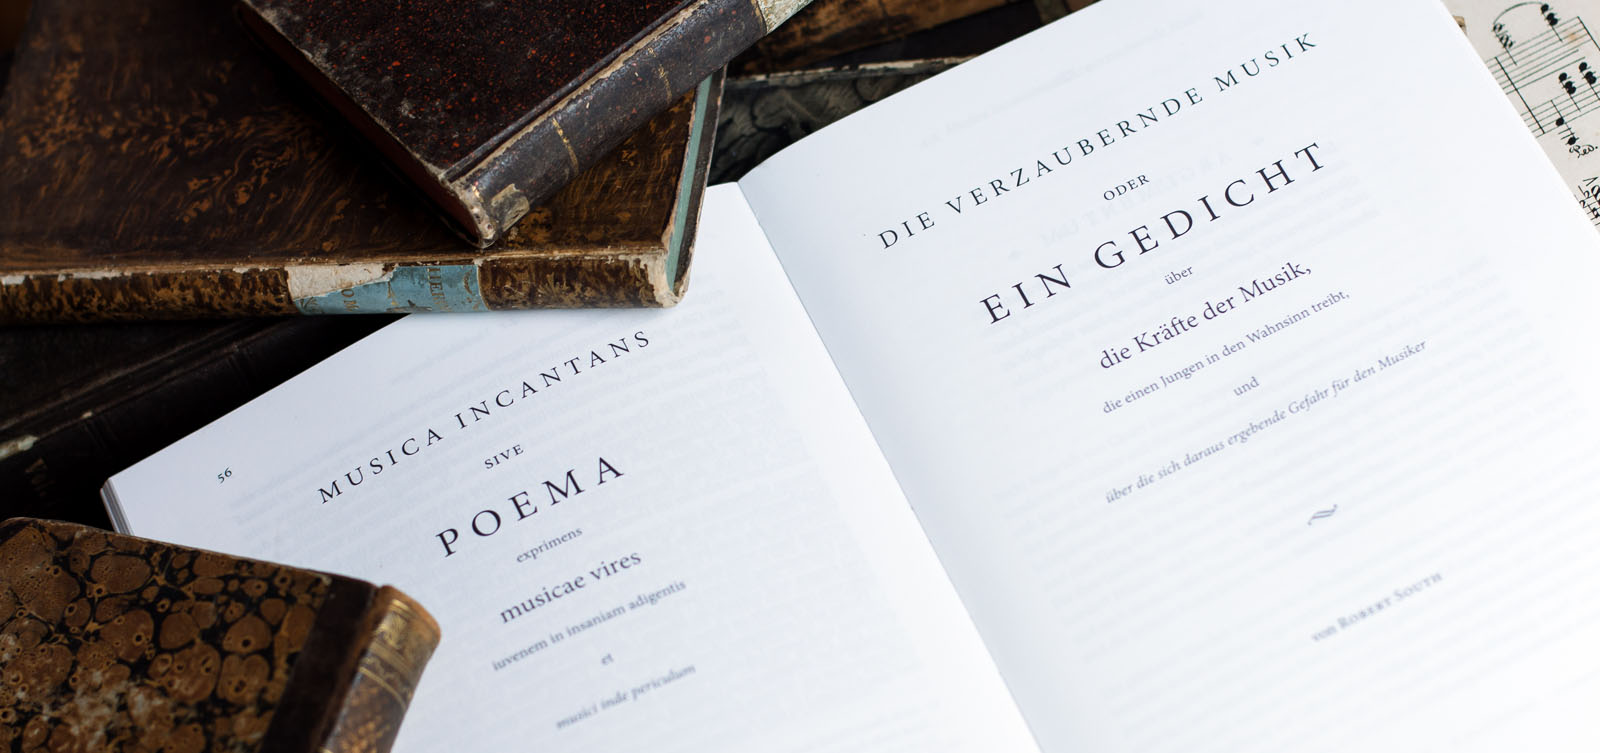 The title page in Latin and German.